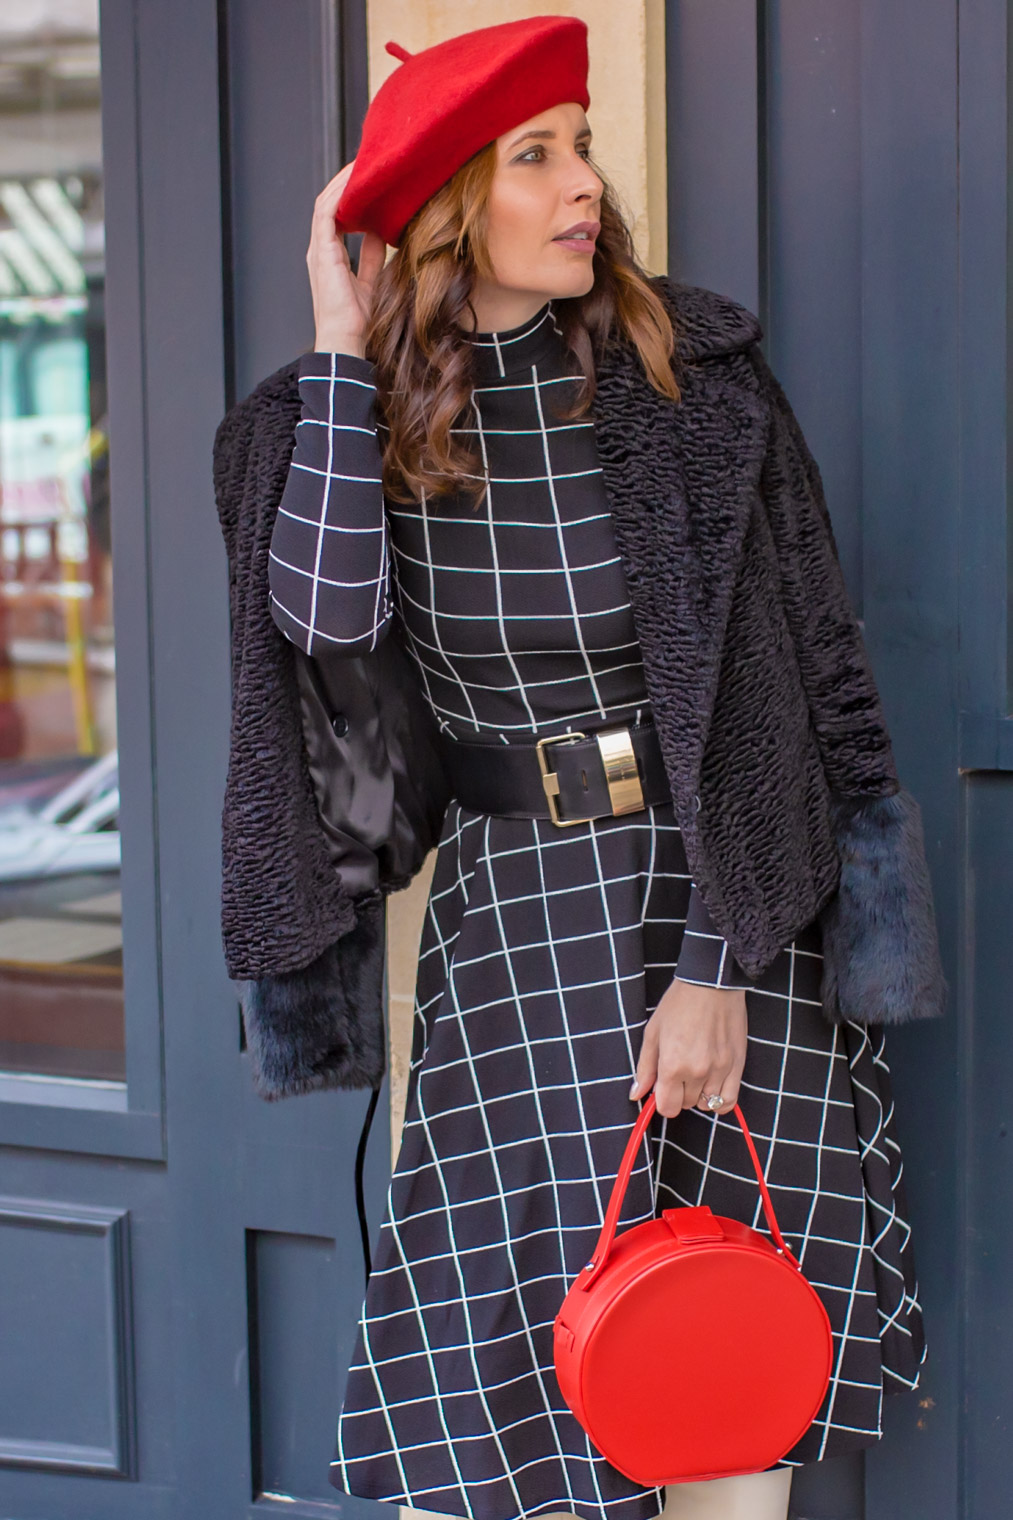 Black faux fur coat red bag and black dress with white checks